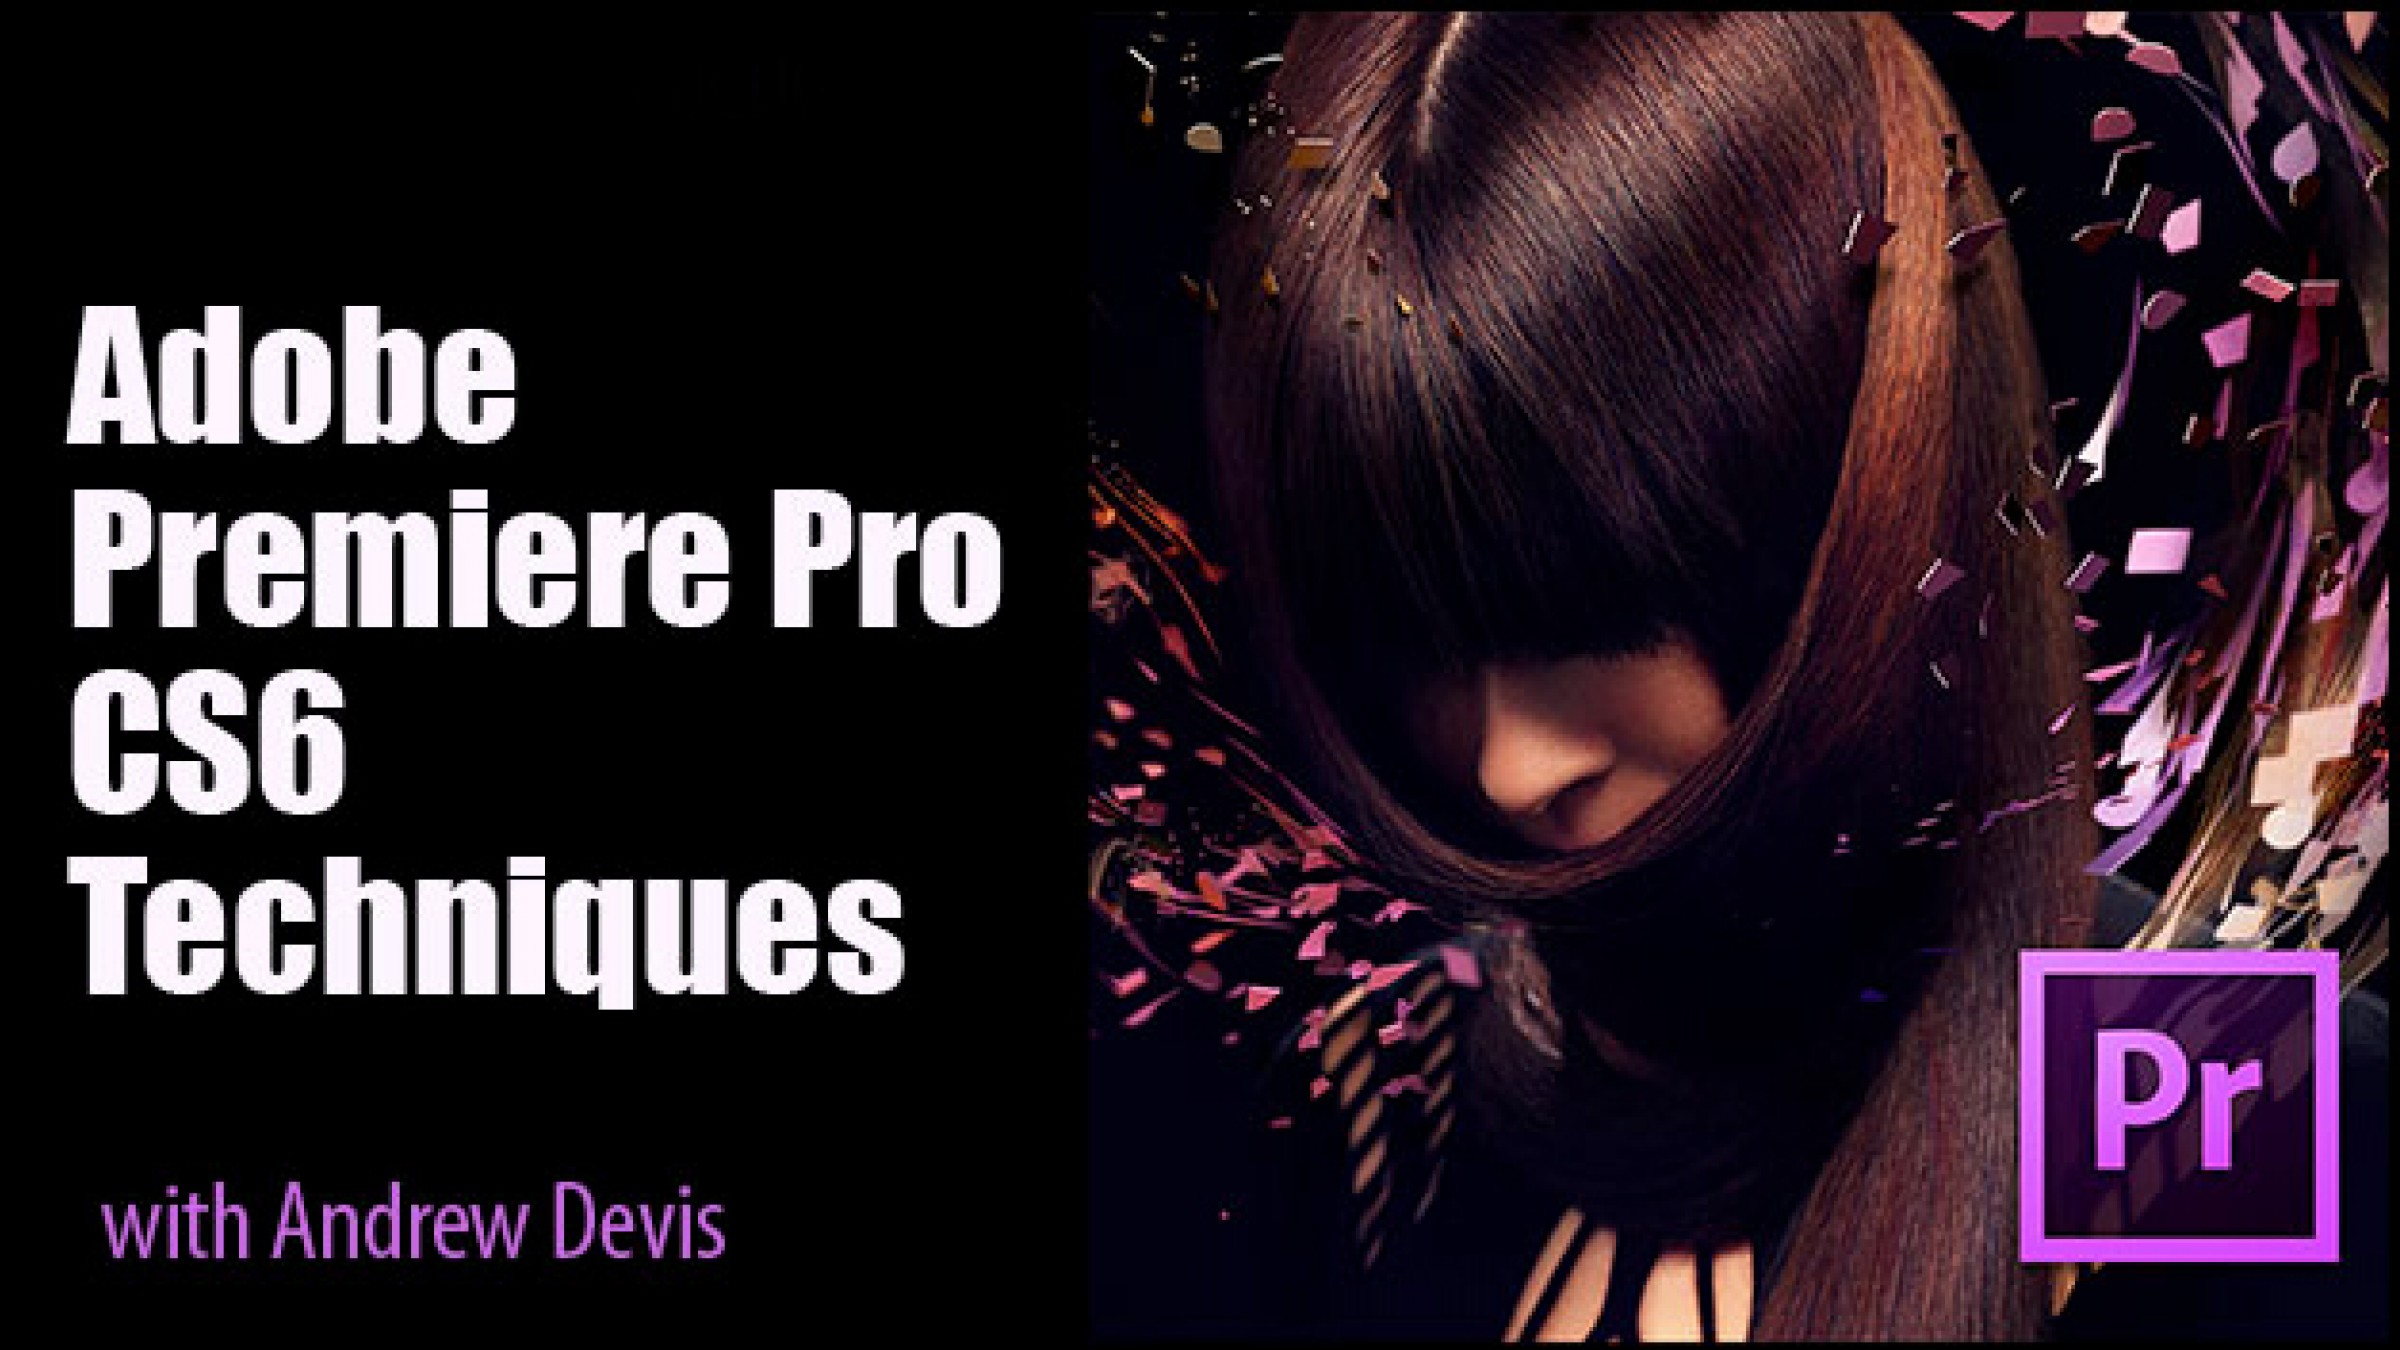 Adobe Premiere Cs6 Tutorials Pdf